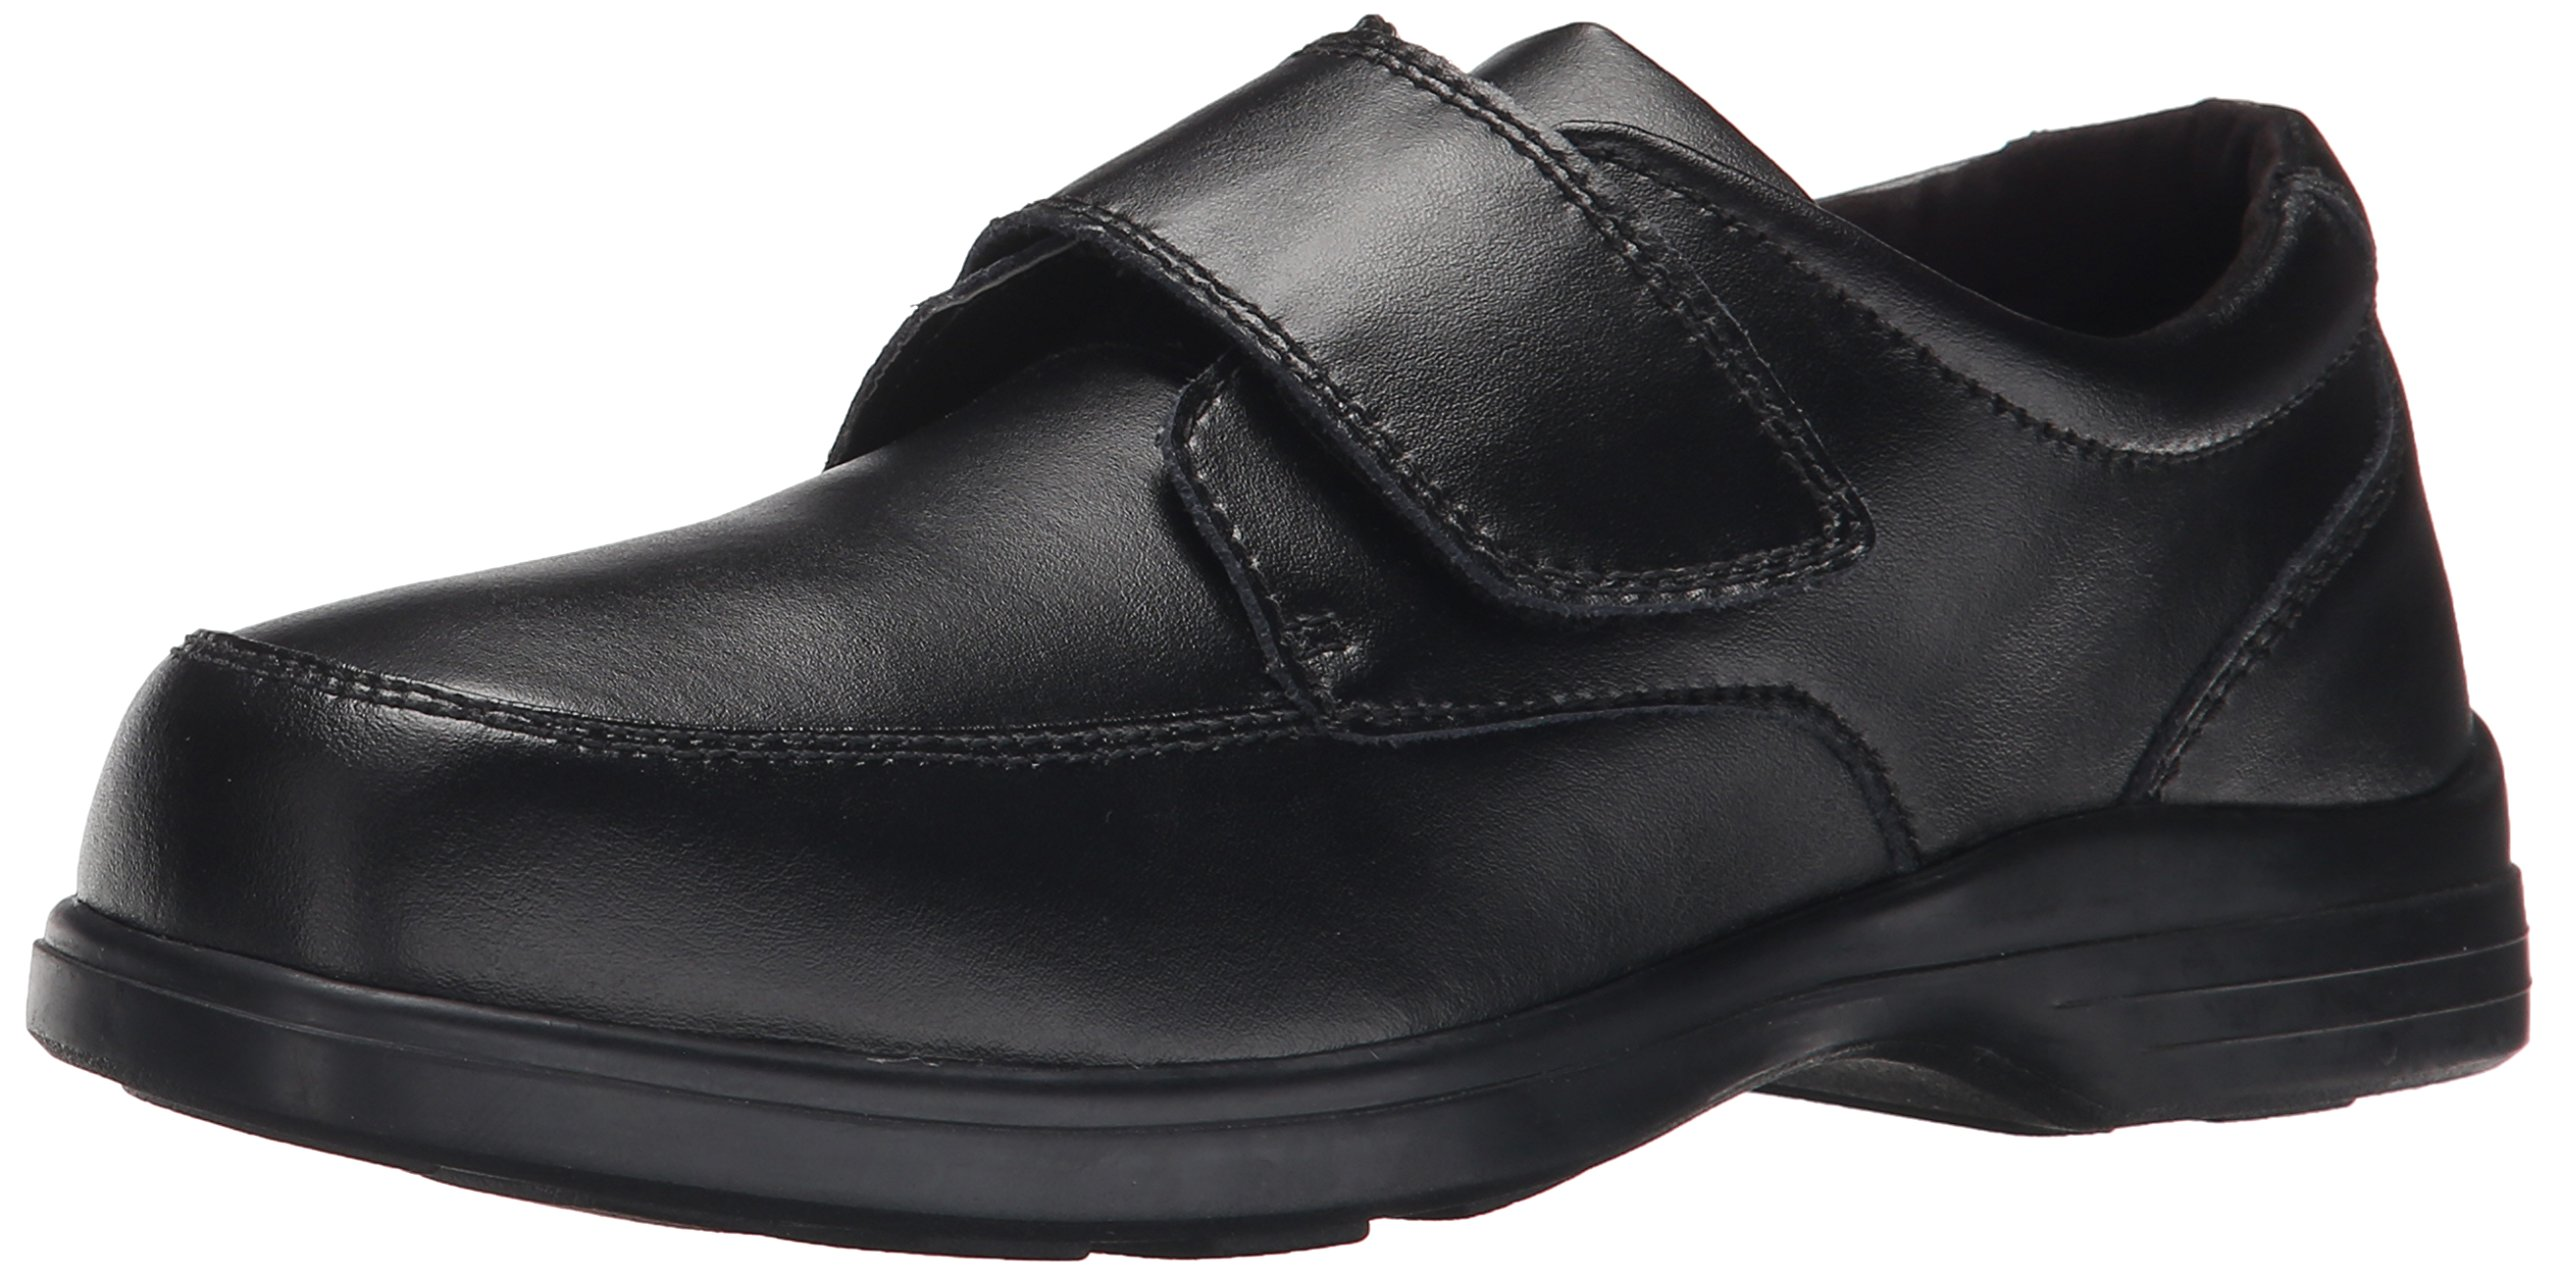 Hush Puppies Gavin Uniform Dress Shoe (Toddler/Little Kid/Big Kid), Black, 2 M US Little Kid